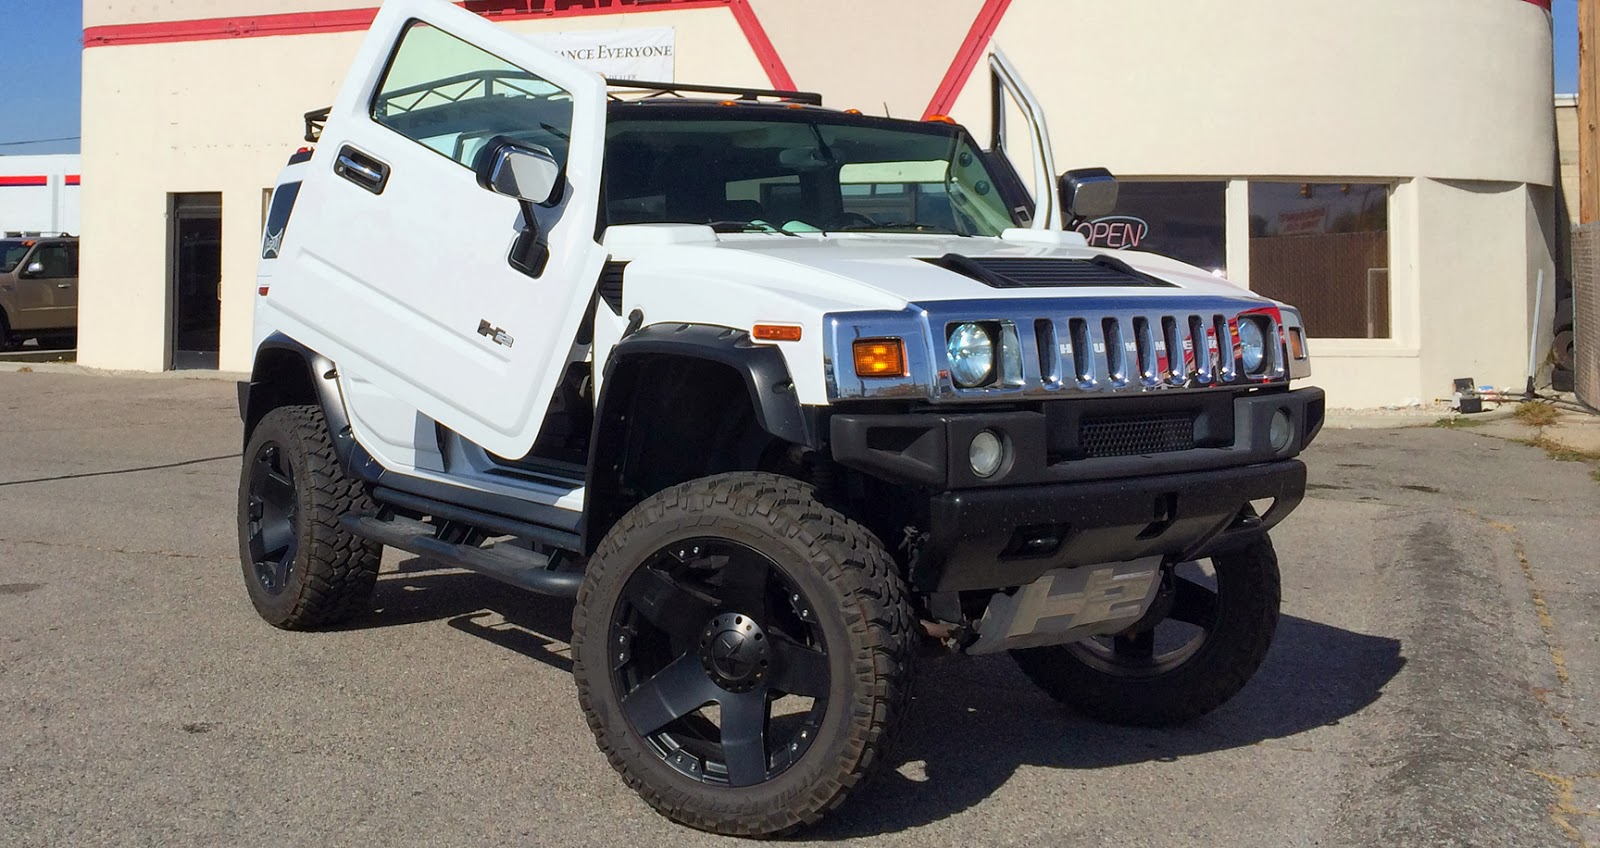 Customized Hummer H2 with Lambo Doors & On the Road With Zoom: Customized Hummer H2 with Lambo Doors